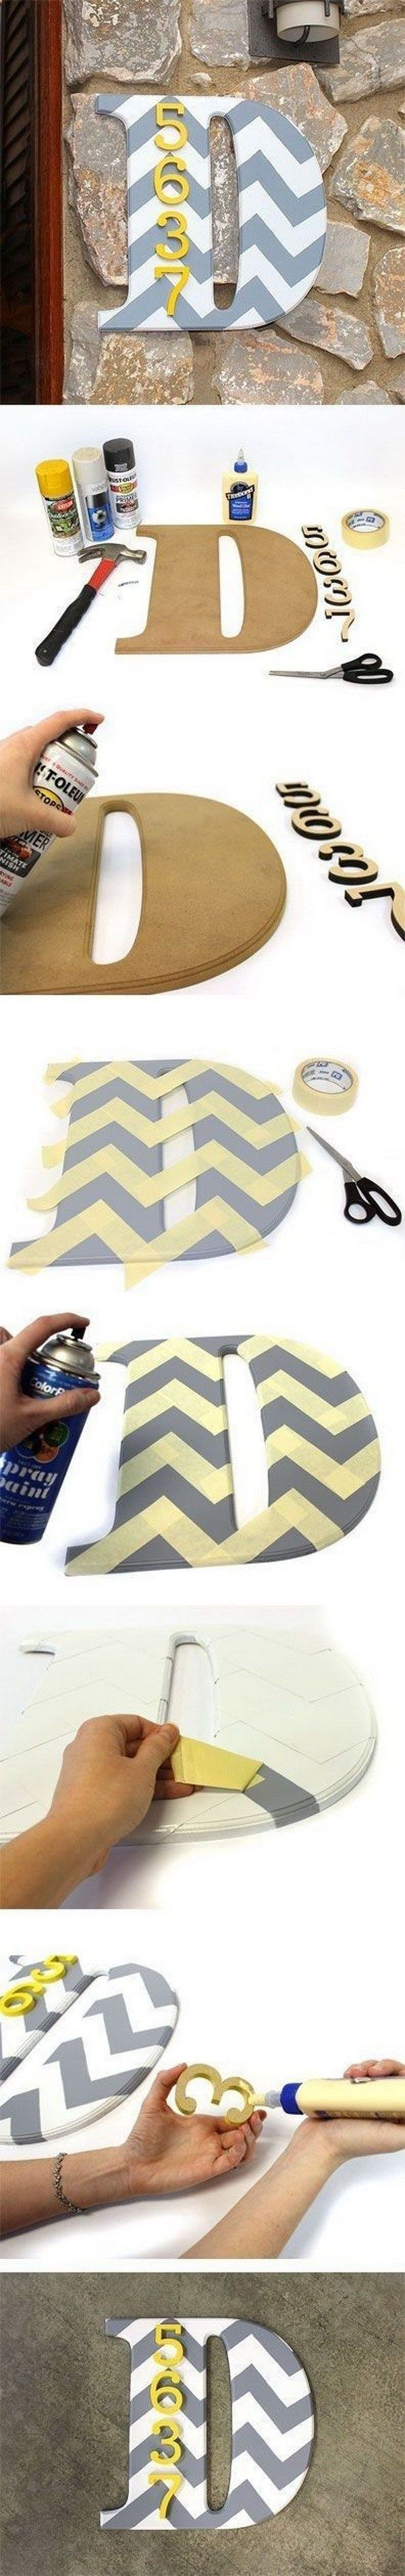 DIY House Address Number Monogram: Make a stylish and custom address number for your front porch!